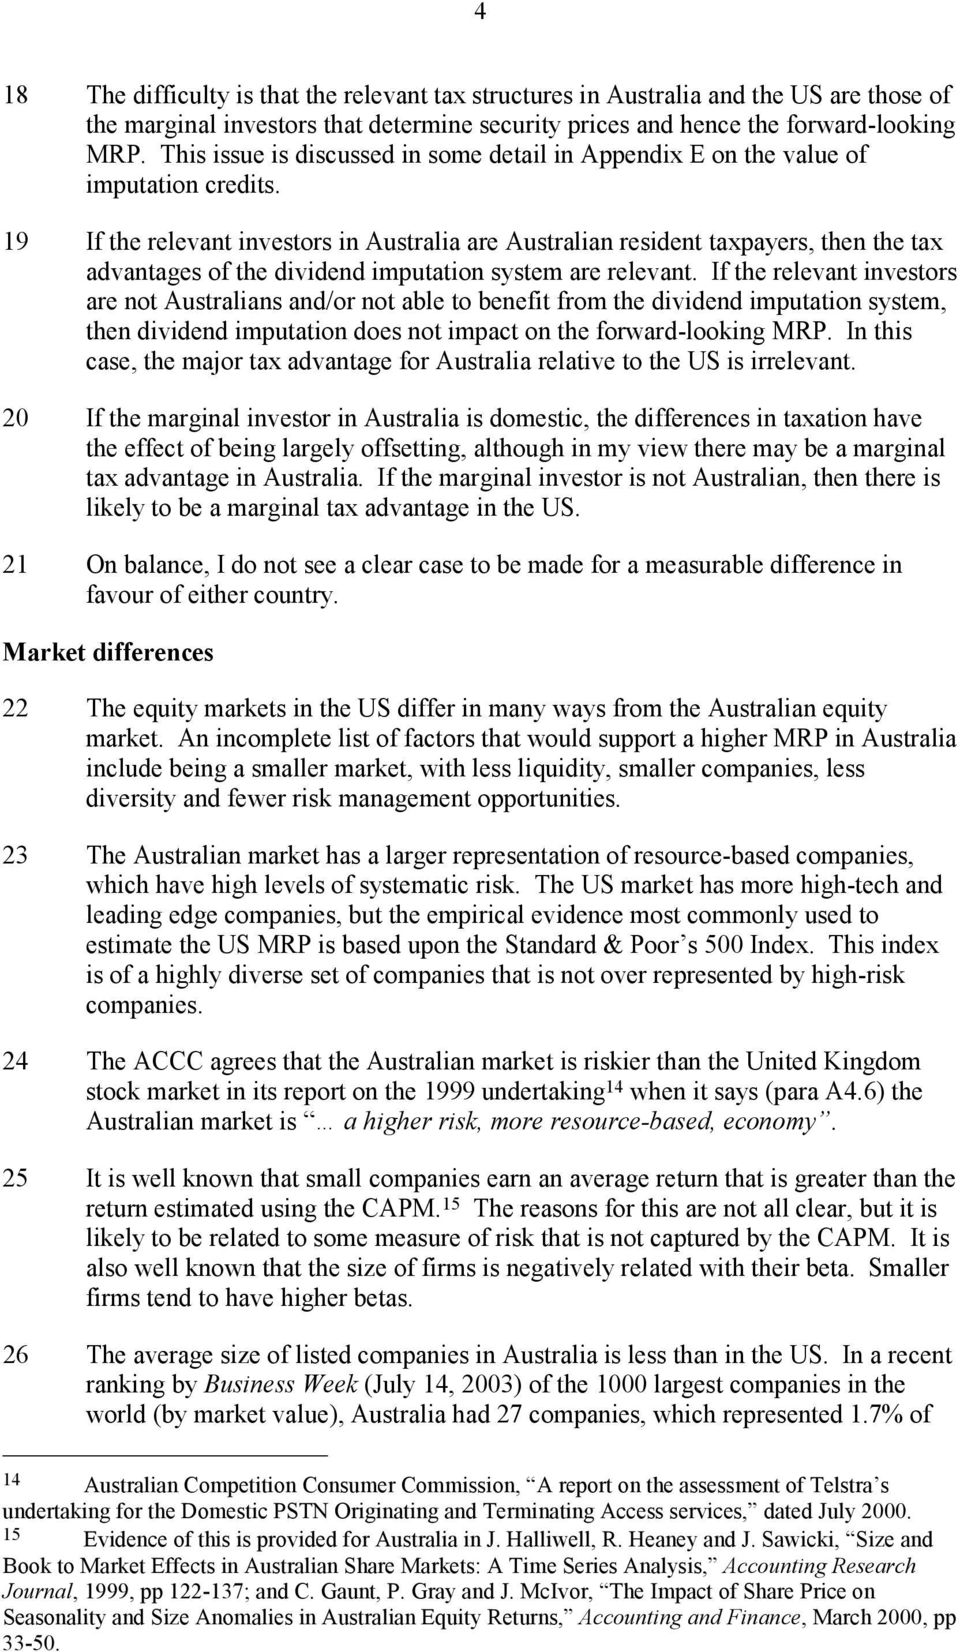 19 If the relevant investors in Australia are Australian resident taxpayers, then the tax advantages of the dividend imputation system are relevant.